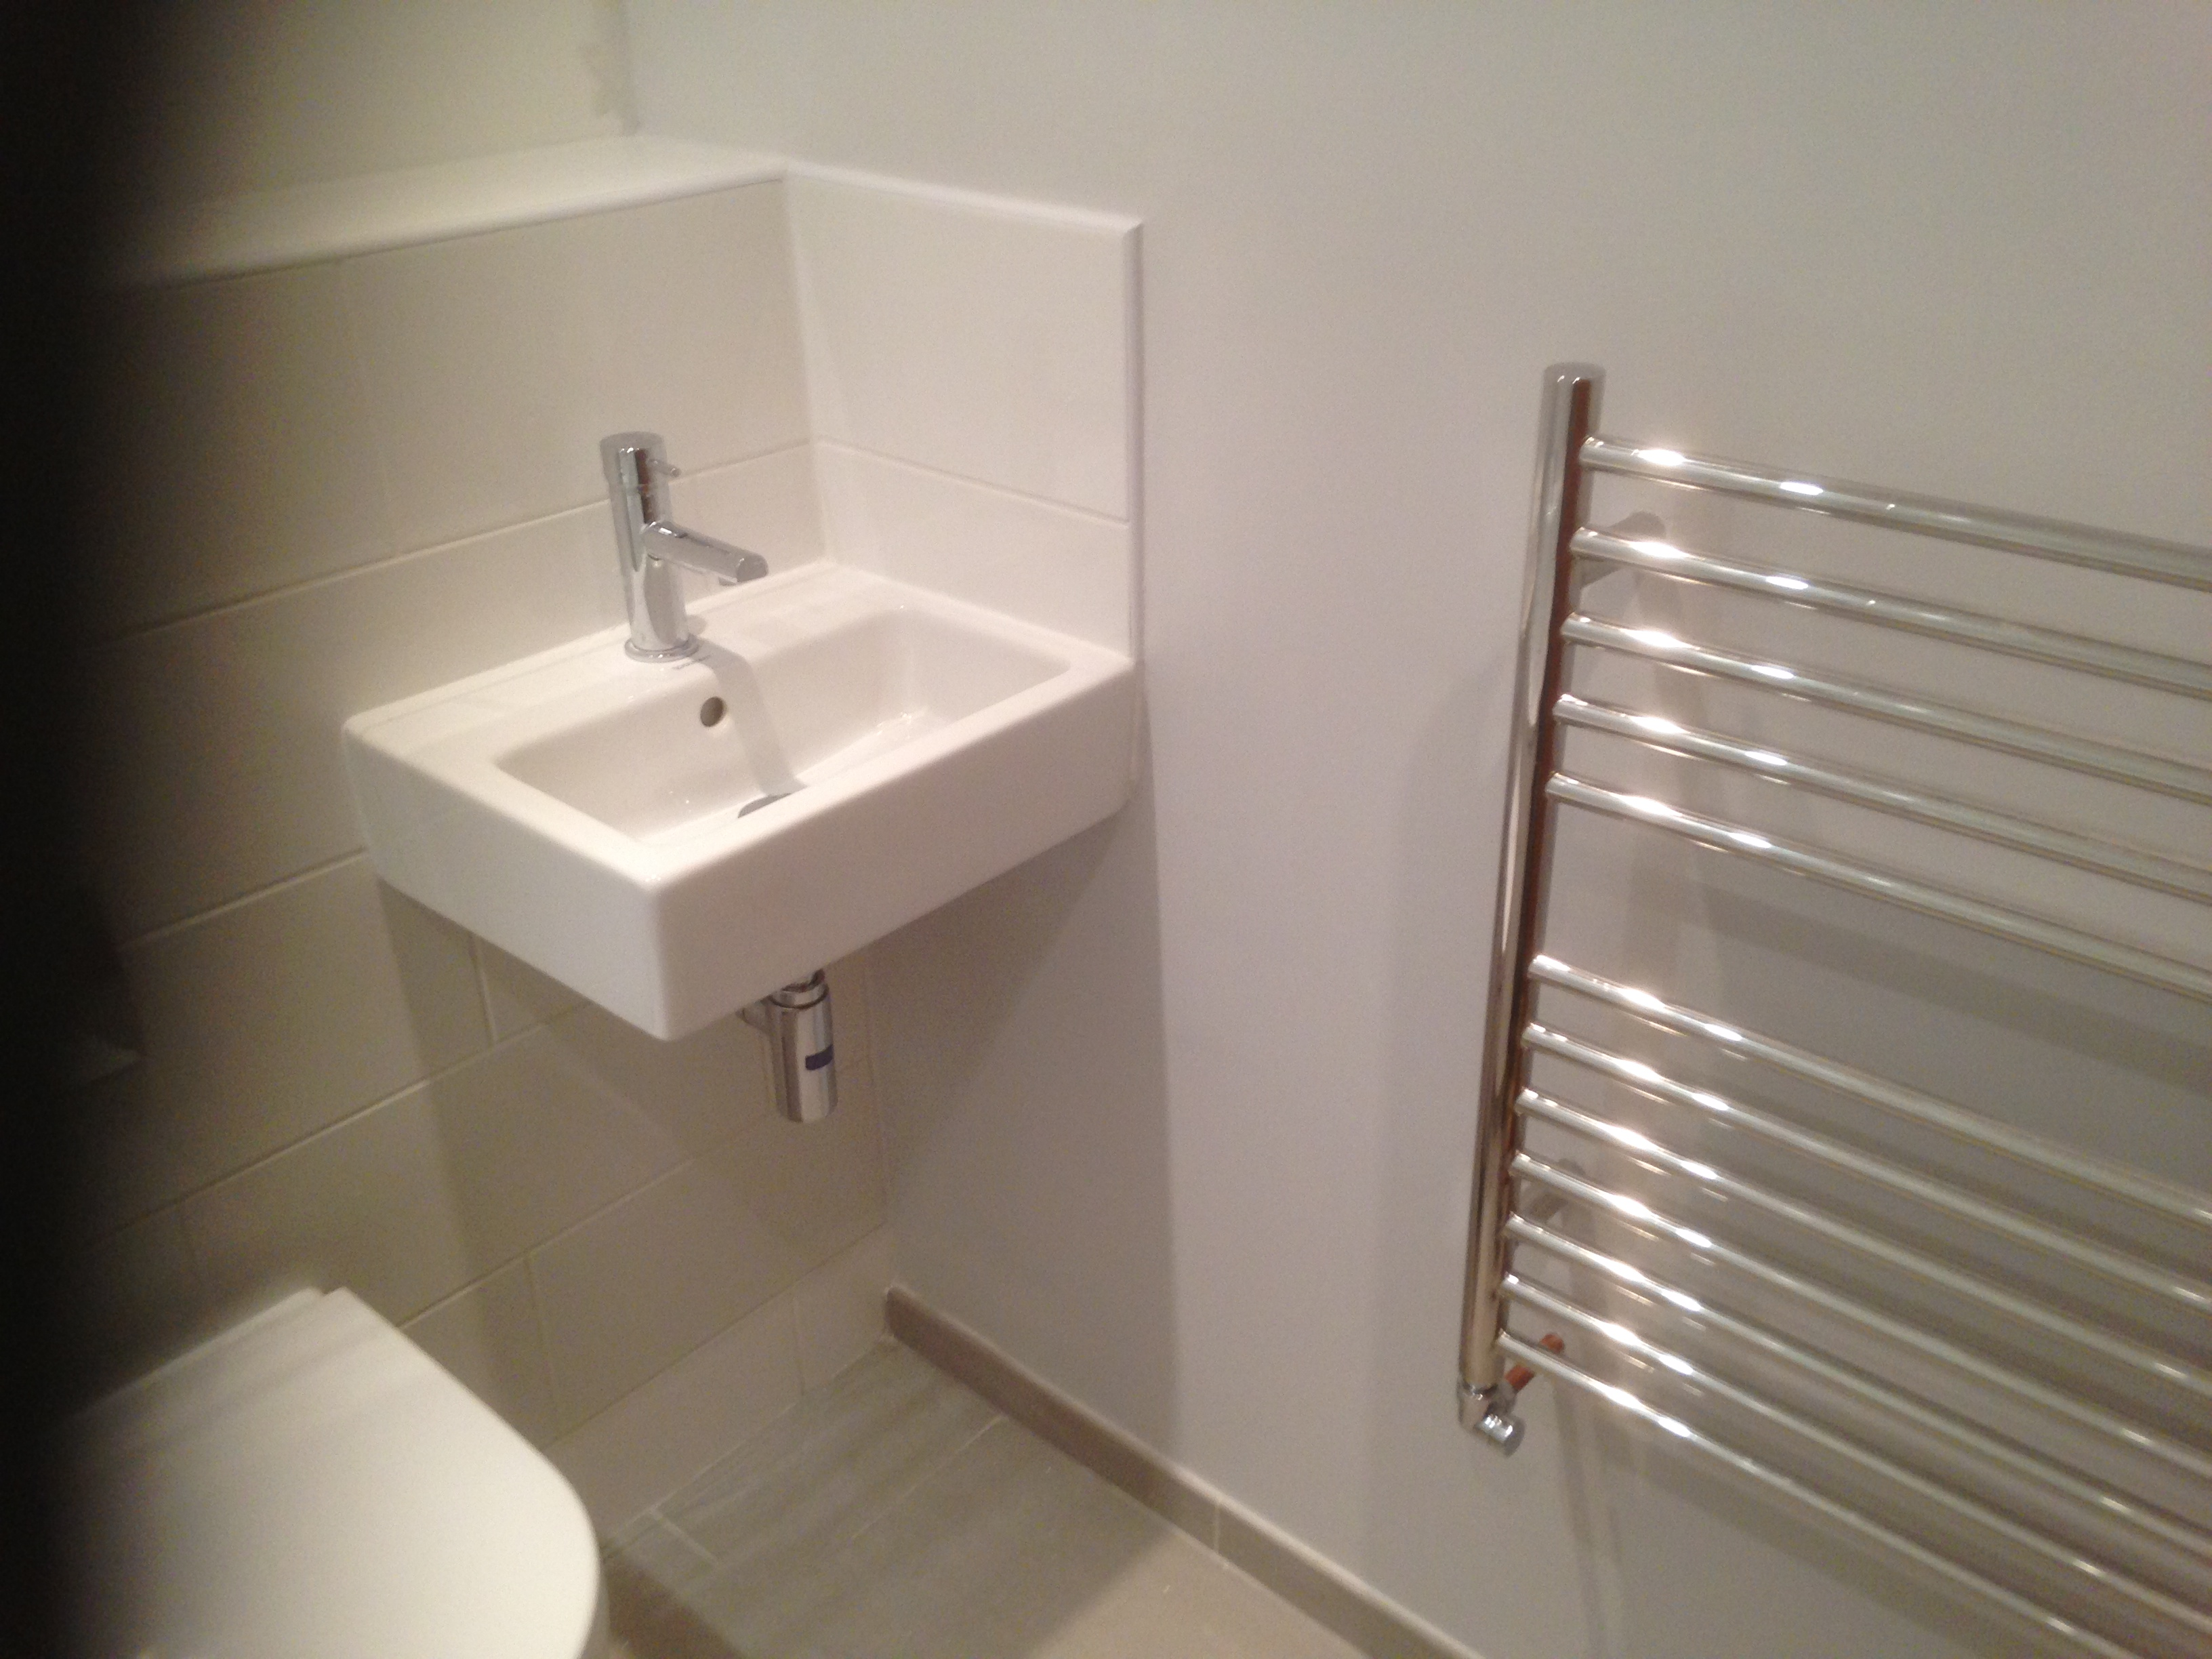 How much to fit a new bathroom - Information